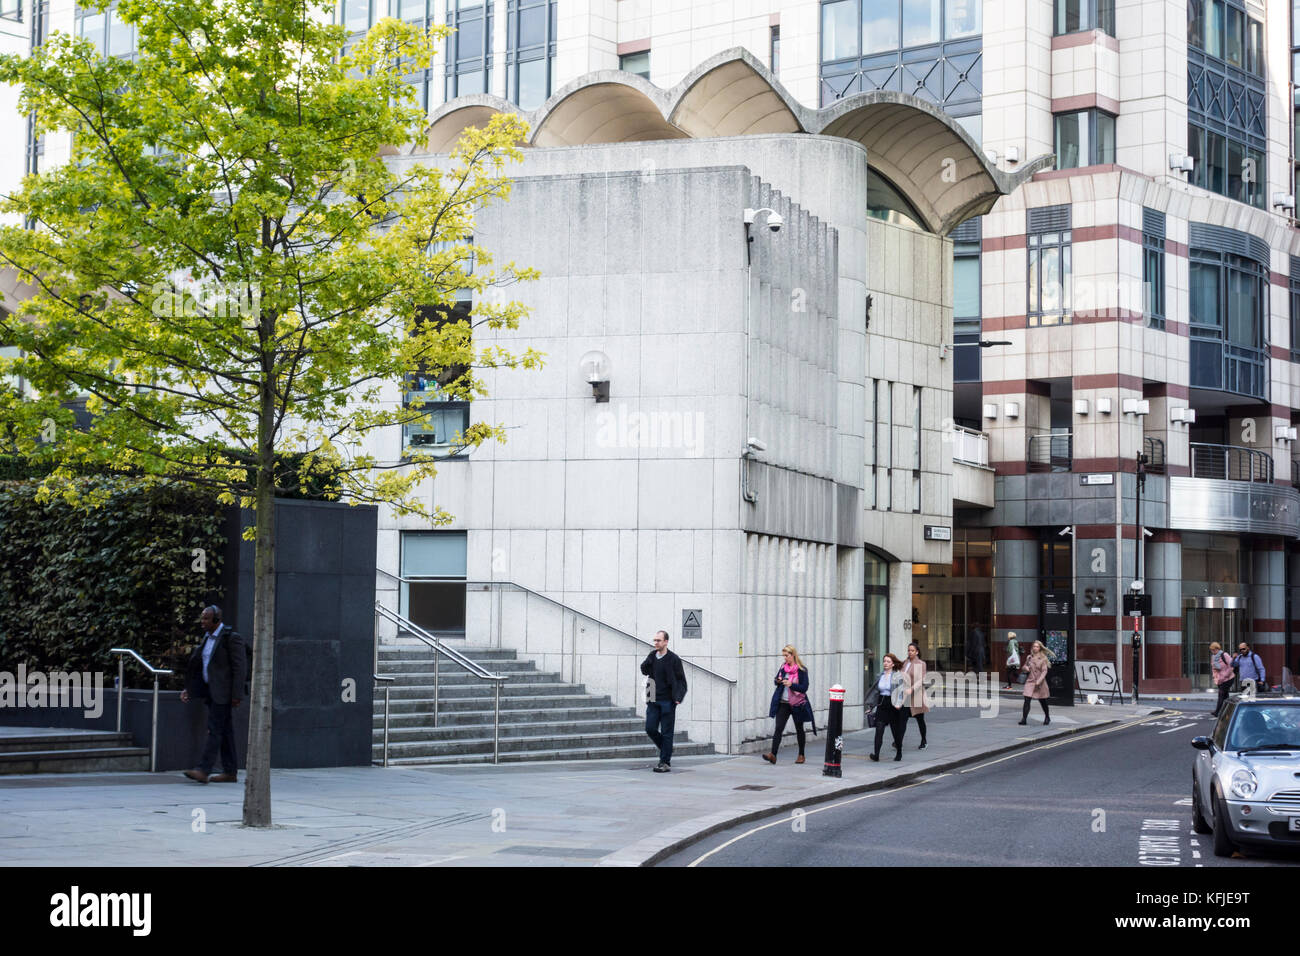 Guildhall extension by Richard Gilbert Scott, Basinghall Street, City of London, UK - Stock Image